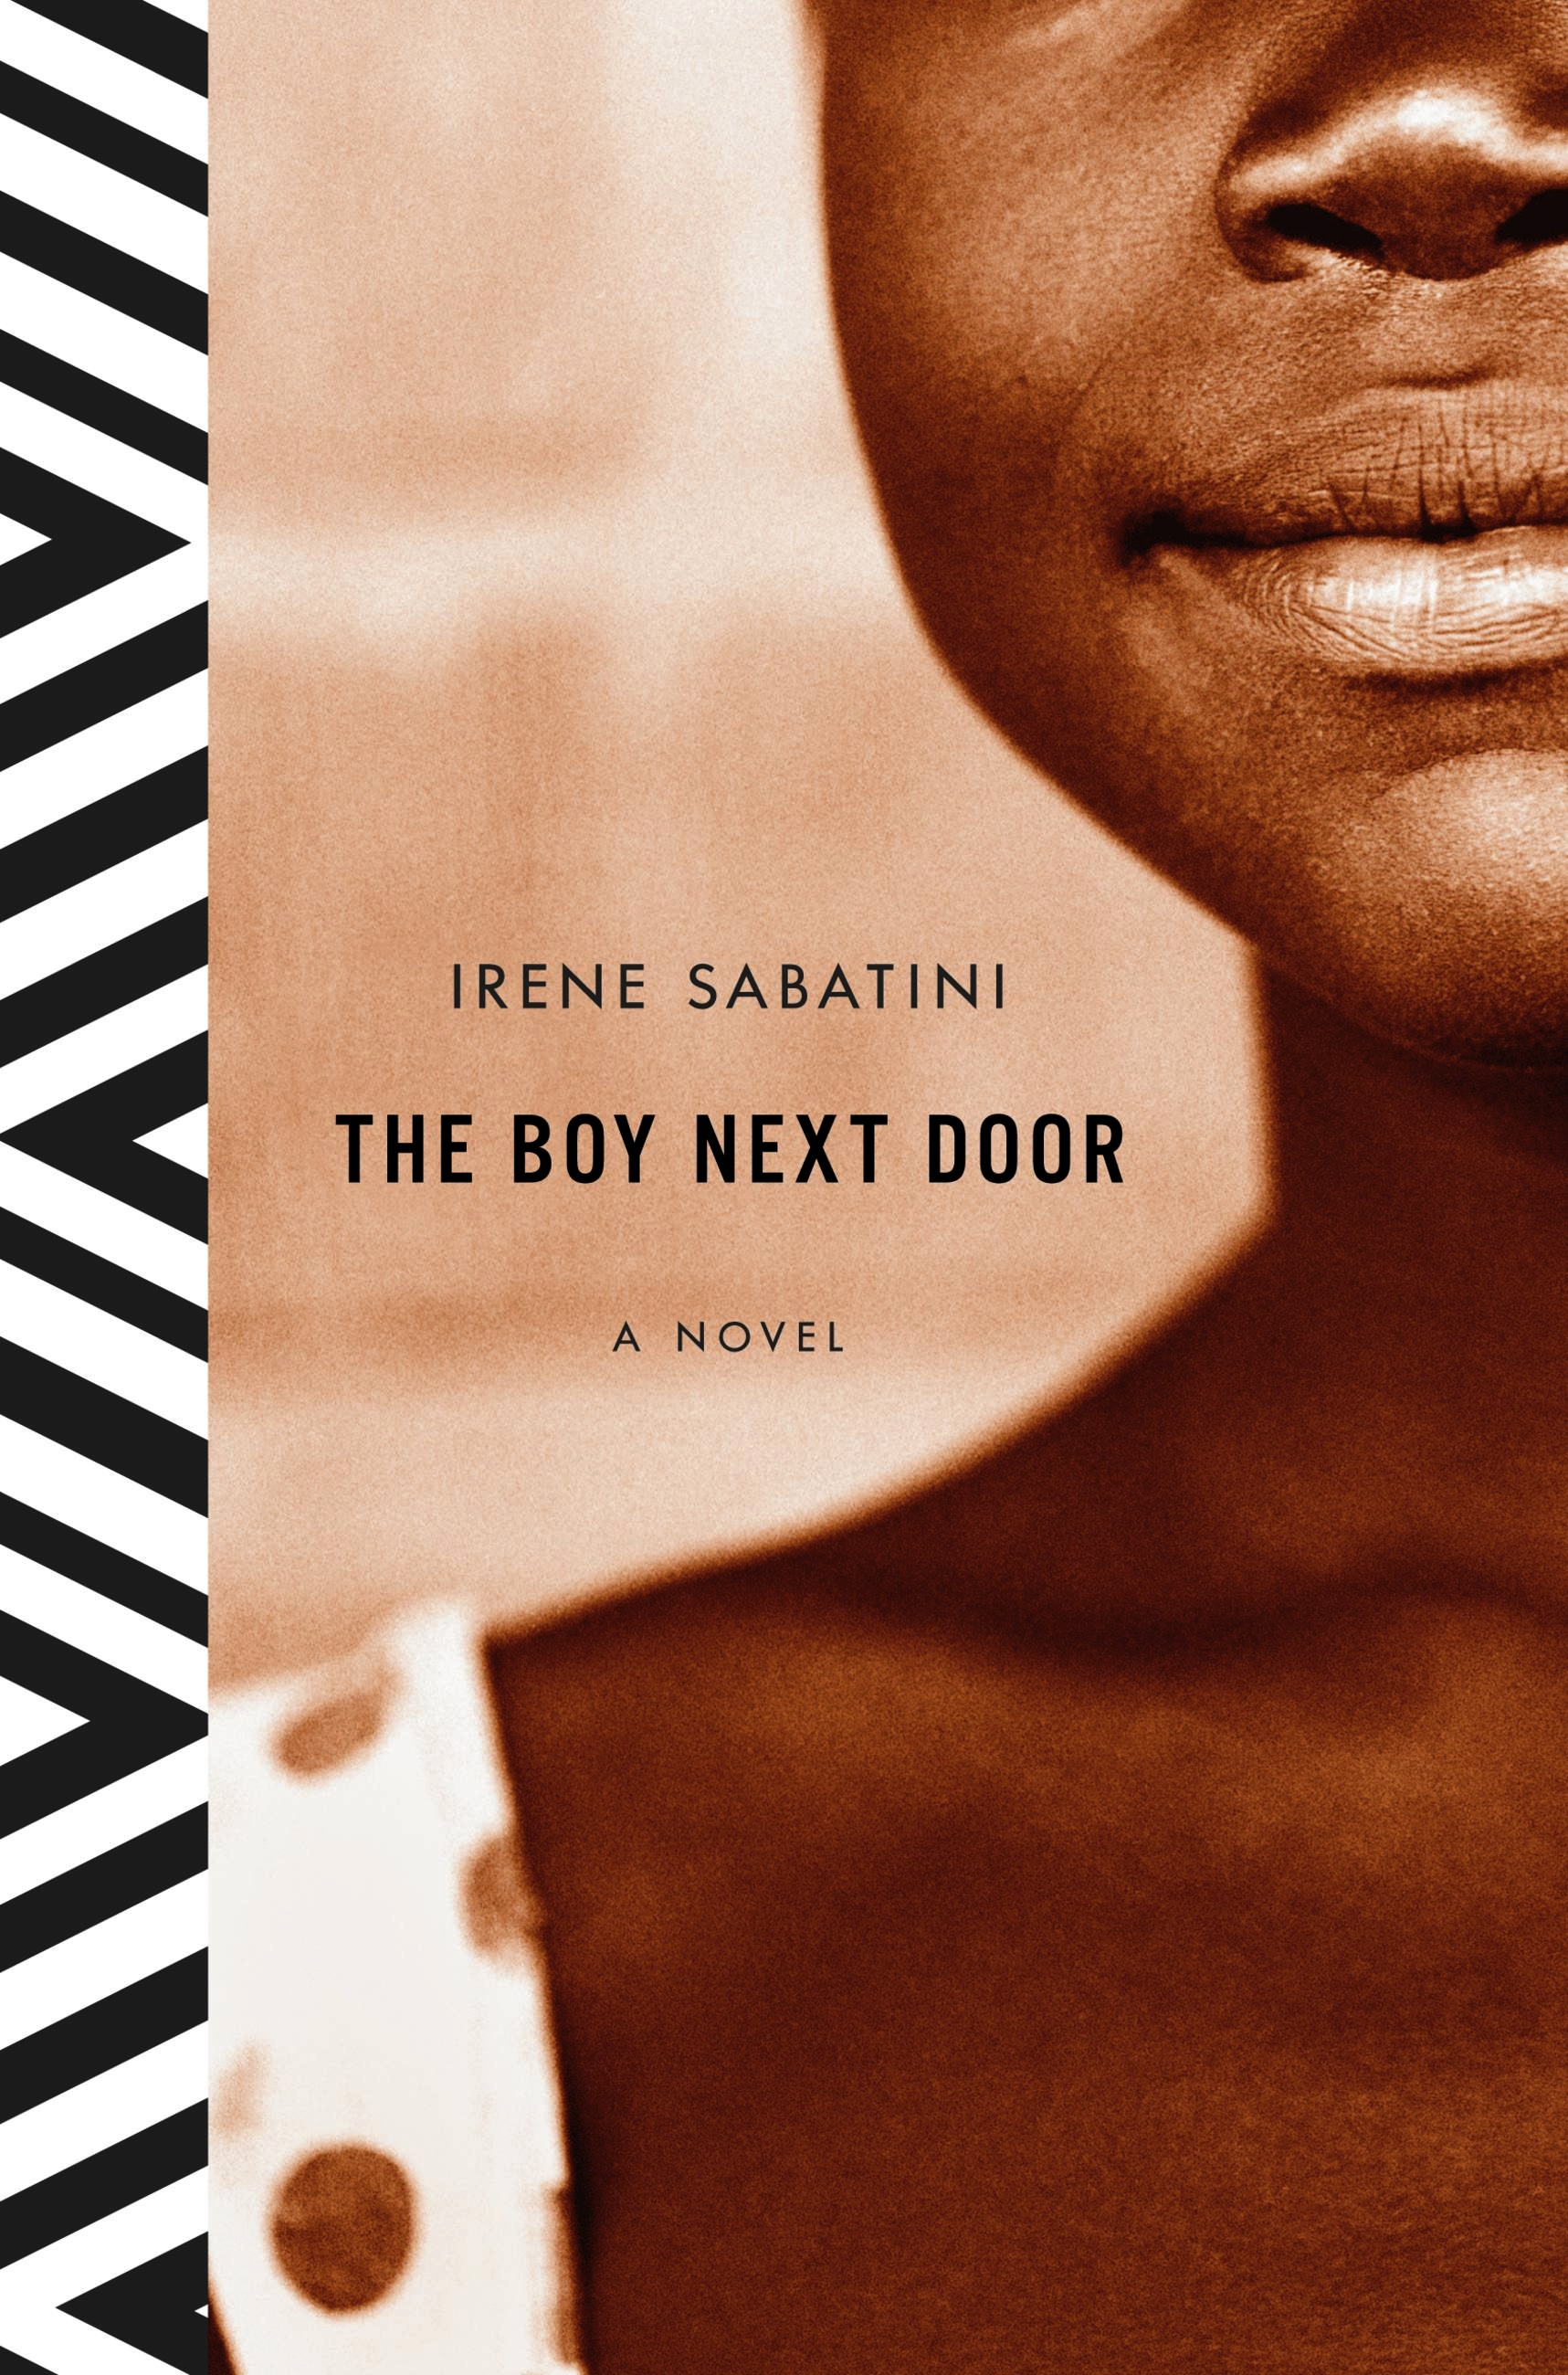 descriptive writing of the boy next door The boy next door: a novel (the boy series) and millions of other books are available for amazon kindle learn more enter your mobile number or email address below and we'll send you a link to download the free kindle app.